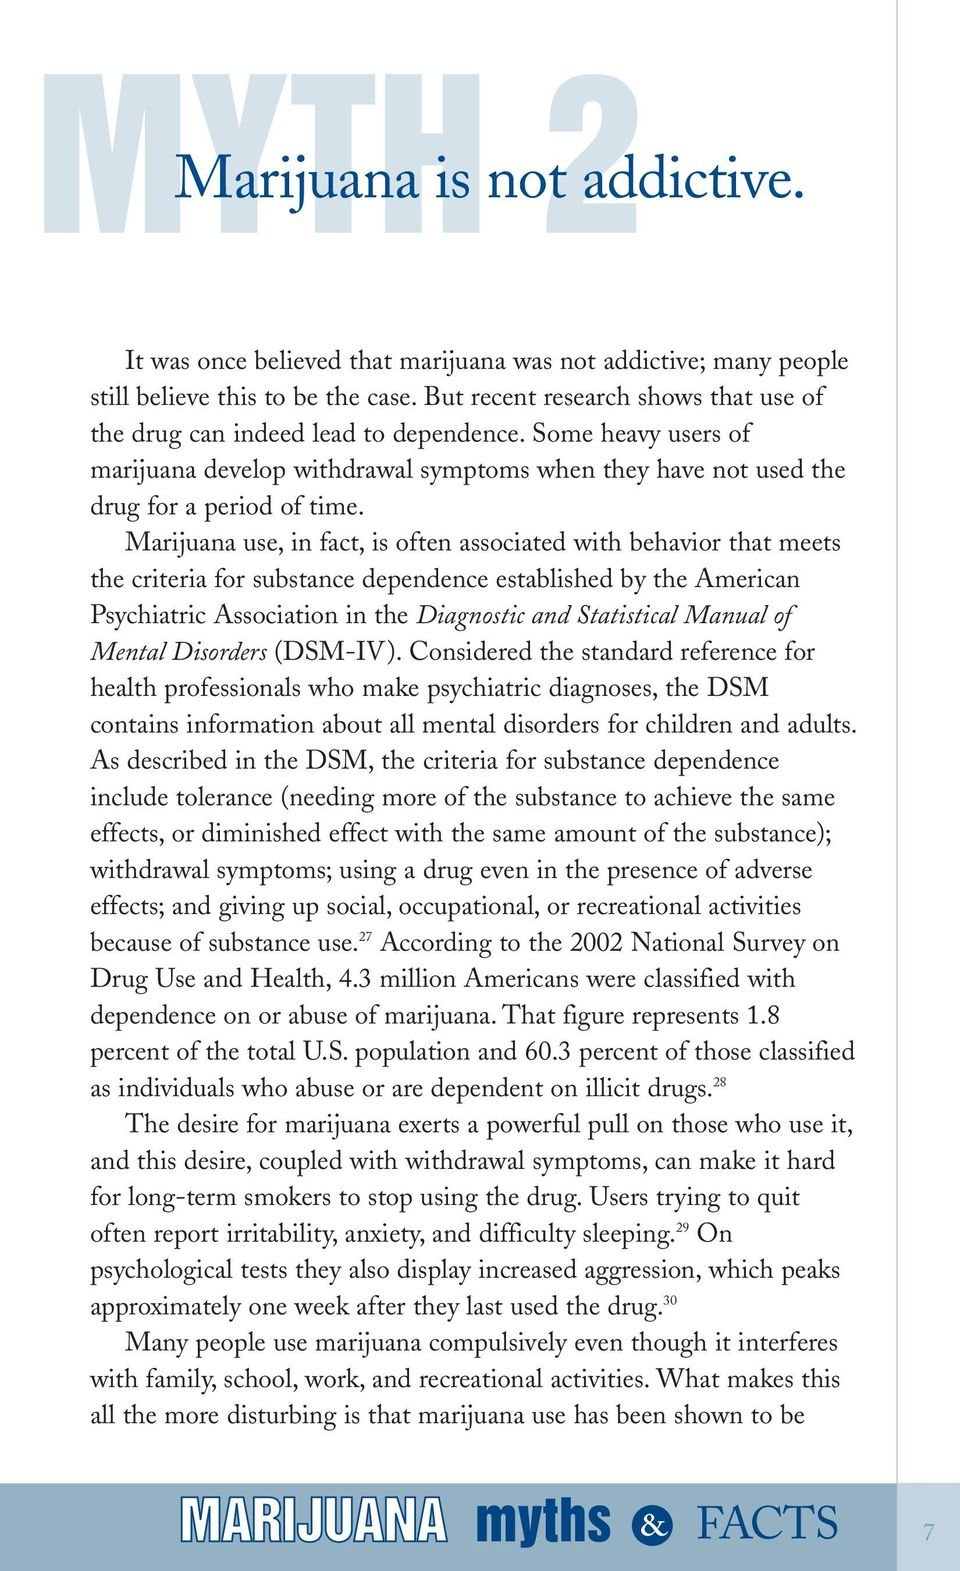 Marijuana use, in fact, is often associated with behavior that meets the criteria for substance dependence established by the American Psychiatric Association in the Diagnostic and Statistical Manual